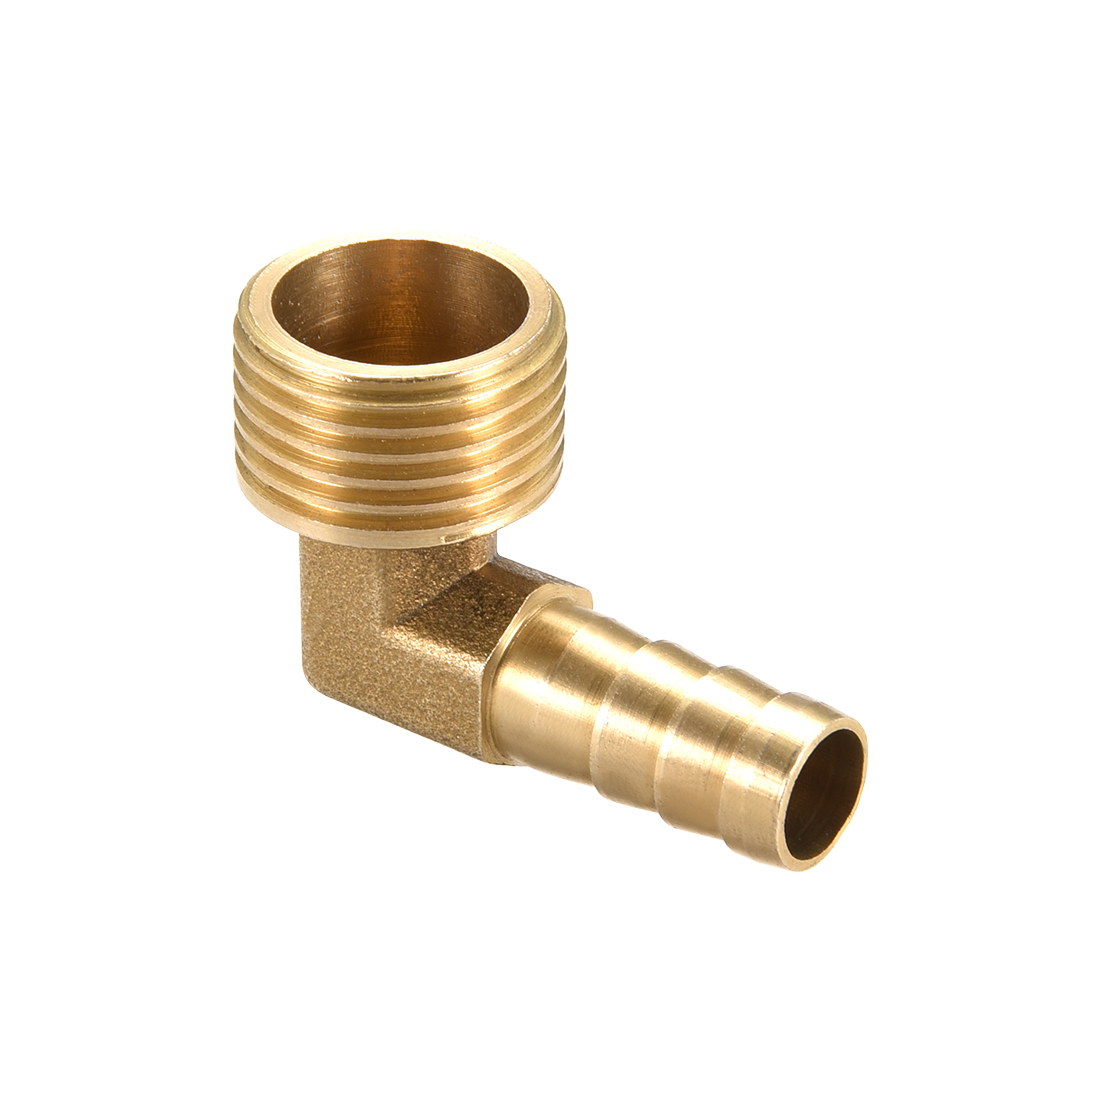 "Brass Barb Hose Fitting 90 Degree Elbow 10mm Barbed x 1/2"" G Male Pipe"